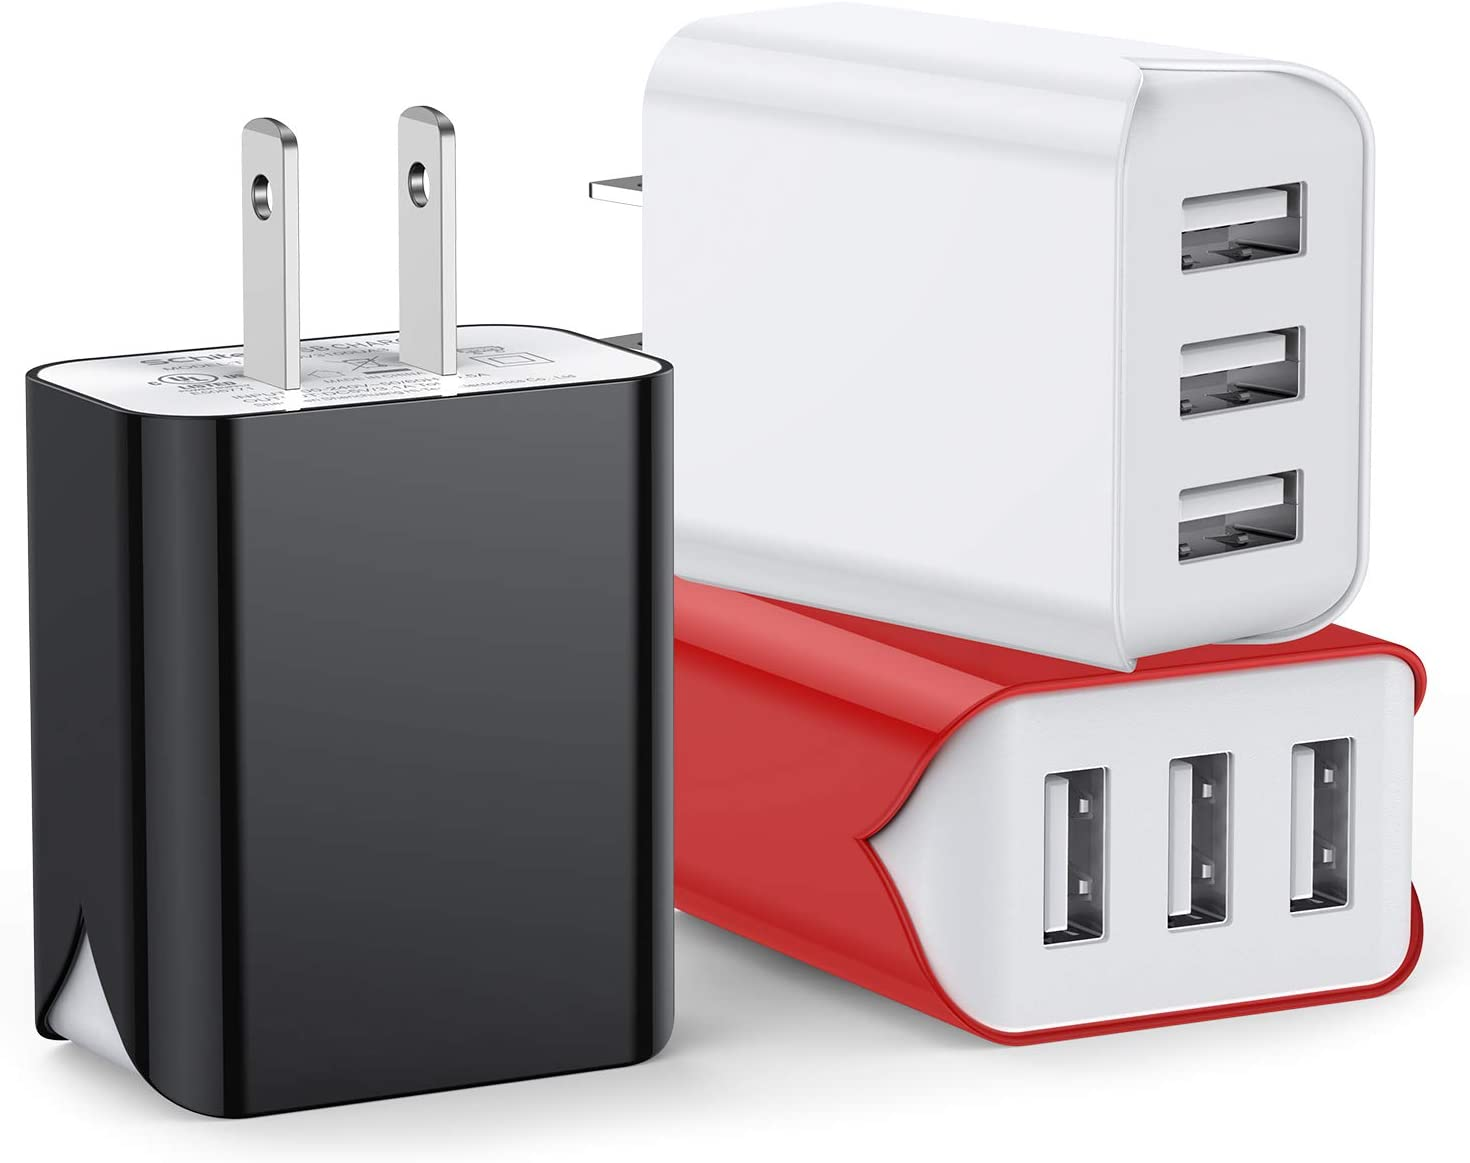 USB Wall Charger, 3-Pack 3-Port Upgraded UL Certified 3.1A Charging Block USB Plug Cube Compatible for iPhone 11/Xs/XS Max/XR/X/8/7/6/Plus,iPad Air/Mini,Galaxy10/9/8/7,Note9/8,Nexus and More